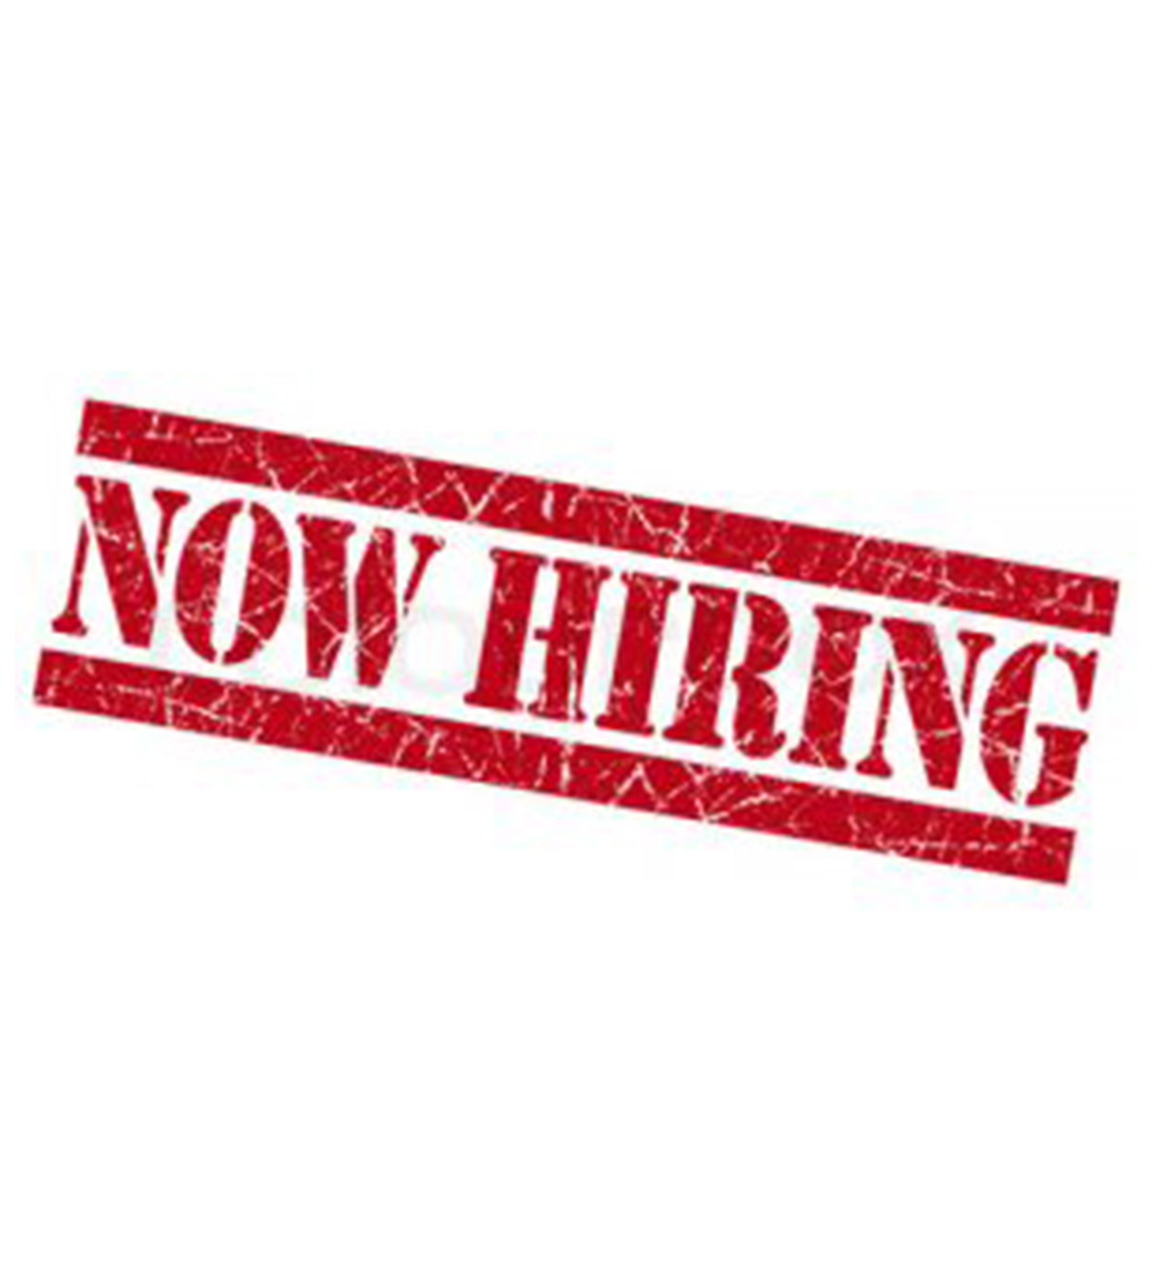 Now hiring banner in red and all caps.